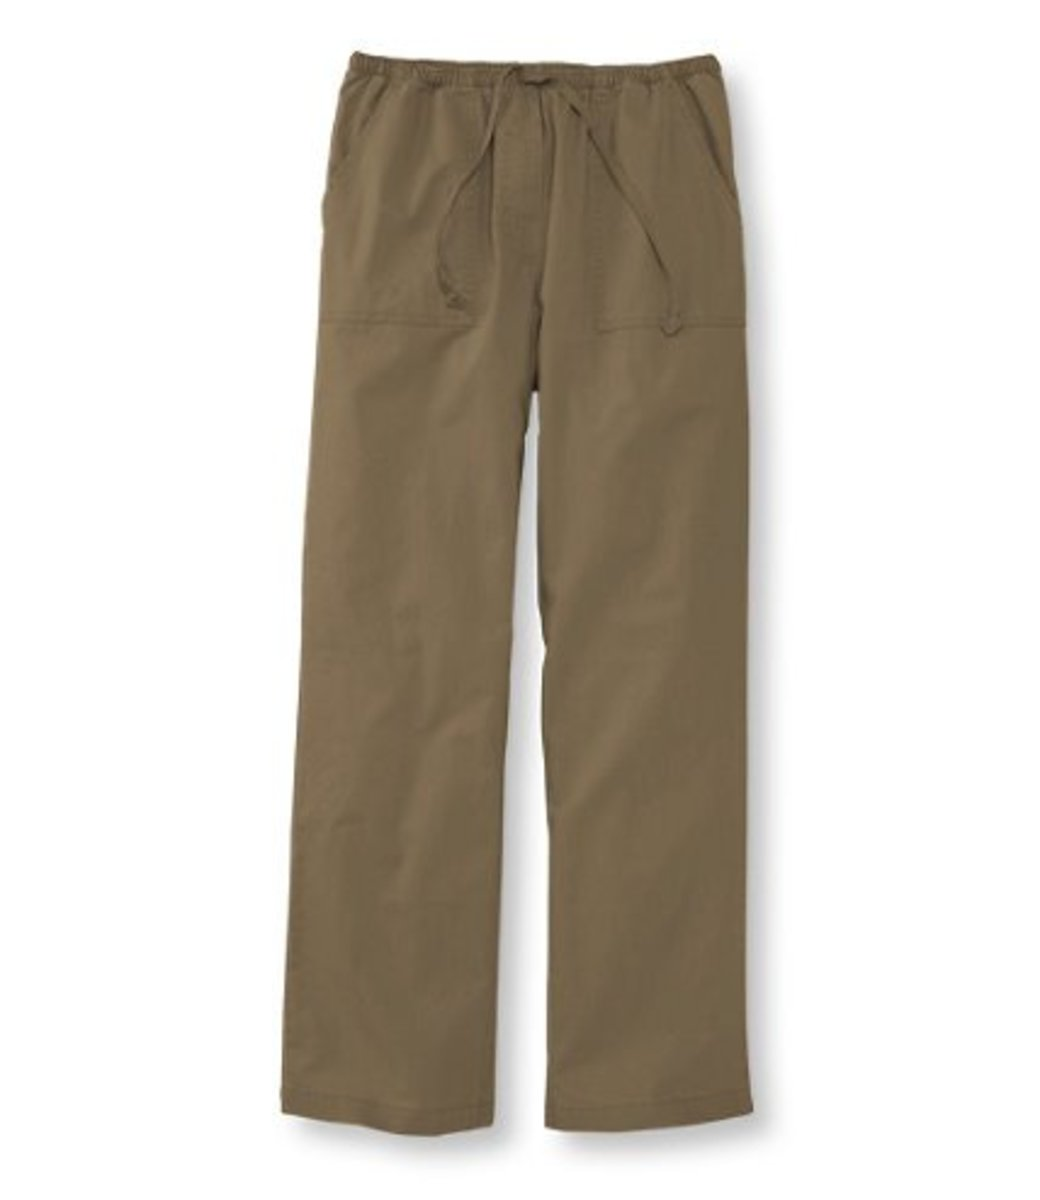 classic fit lightweight cotton canvas pants with elastic waist